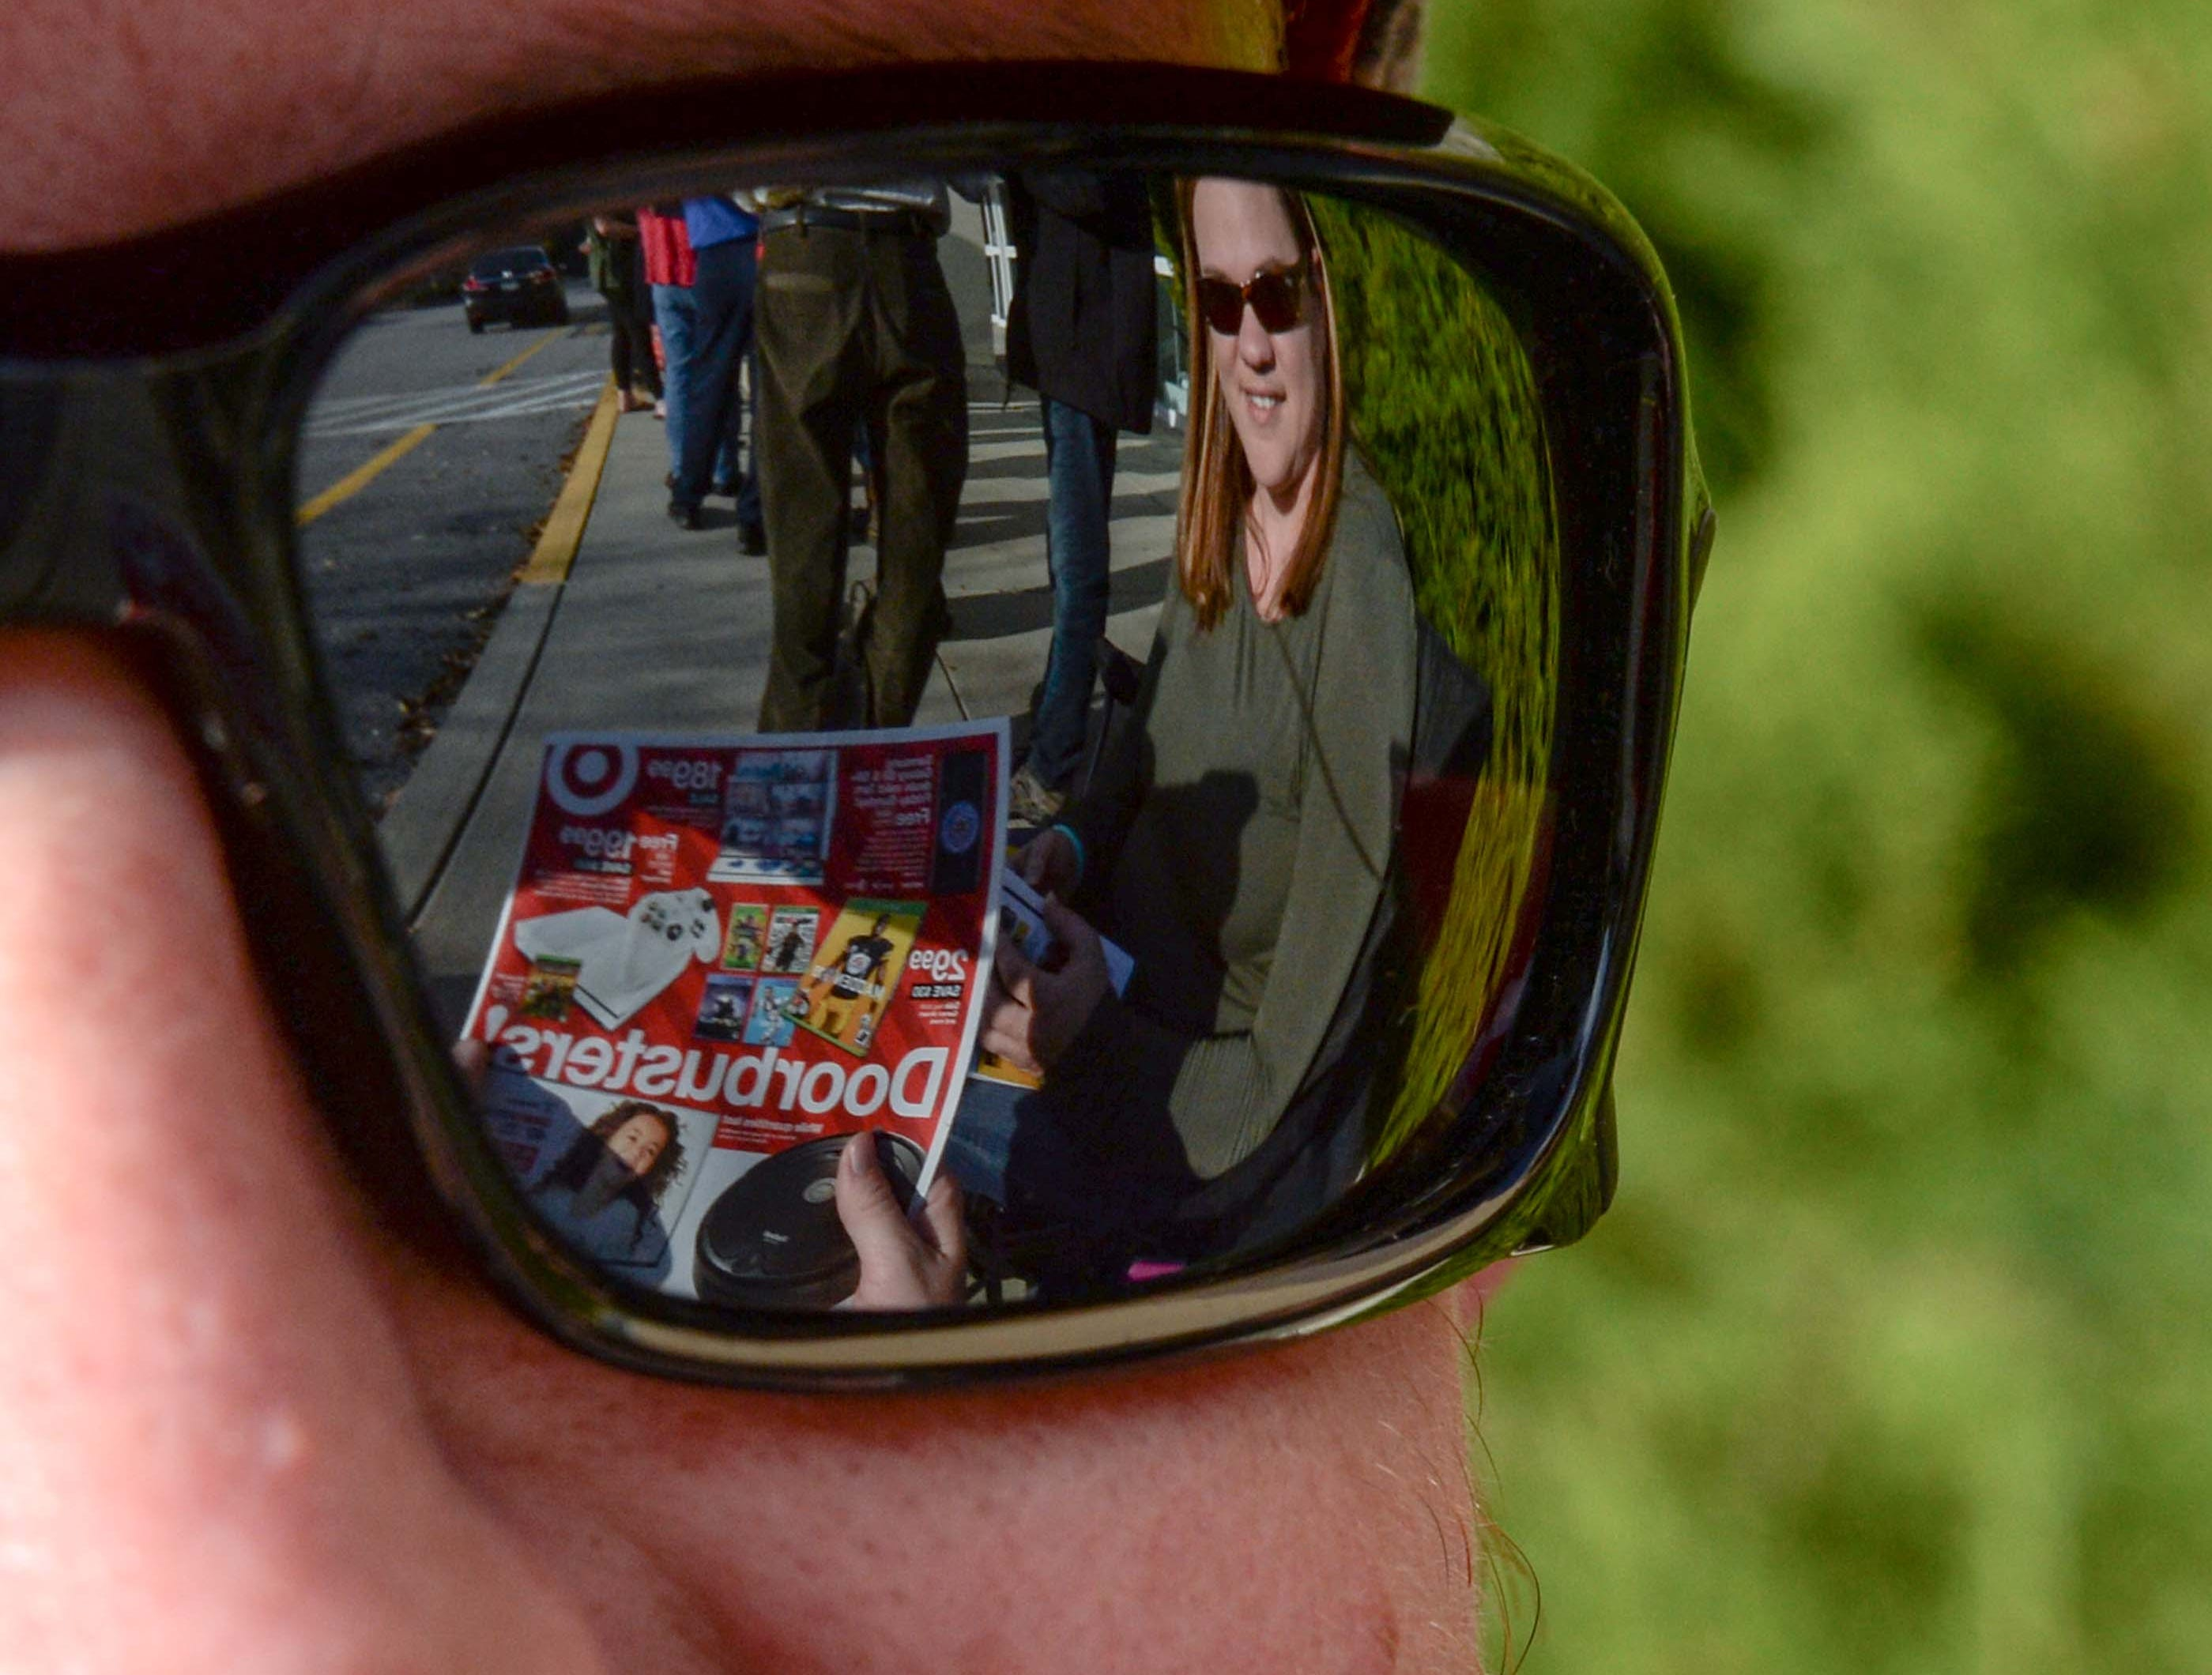 Kevin Crisco and Tiffany Pake of Anderson both look at newspaper ads while waiting in line for doors to open for Black Friday sales at Kohl's in Anderson on Thanksgiving Day, Thursday, November 22, 2018.